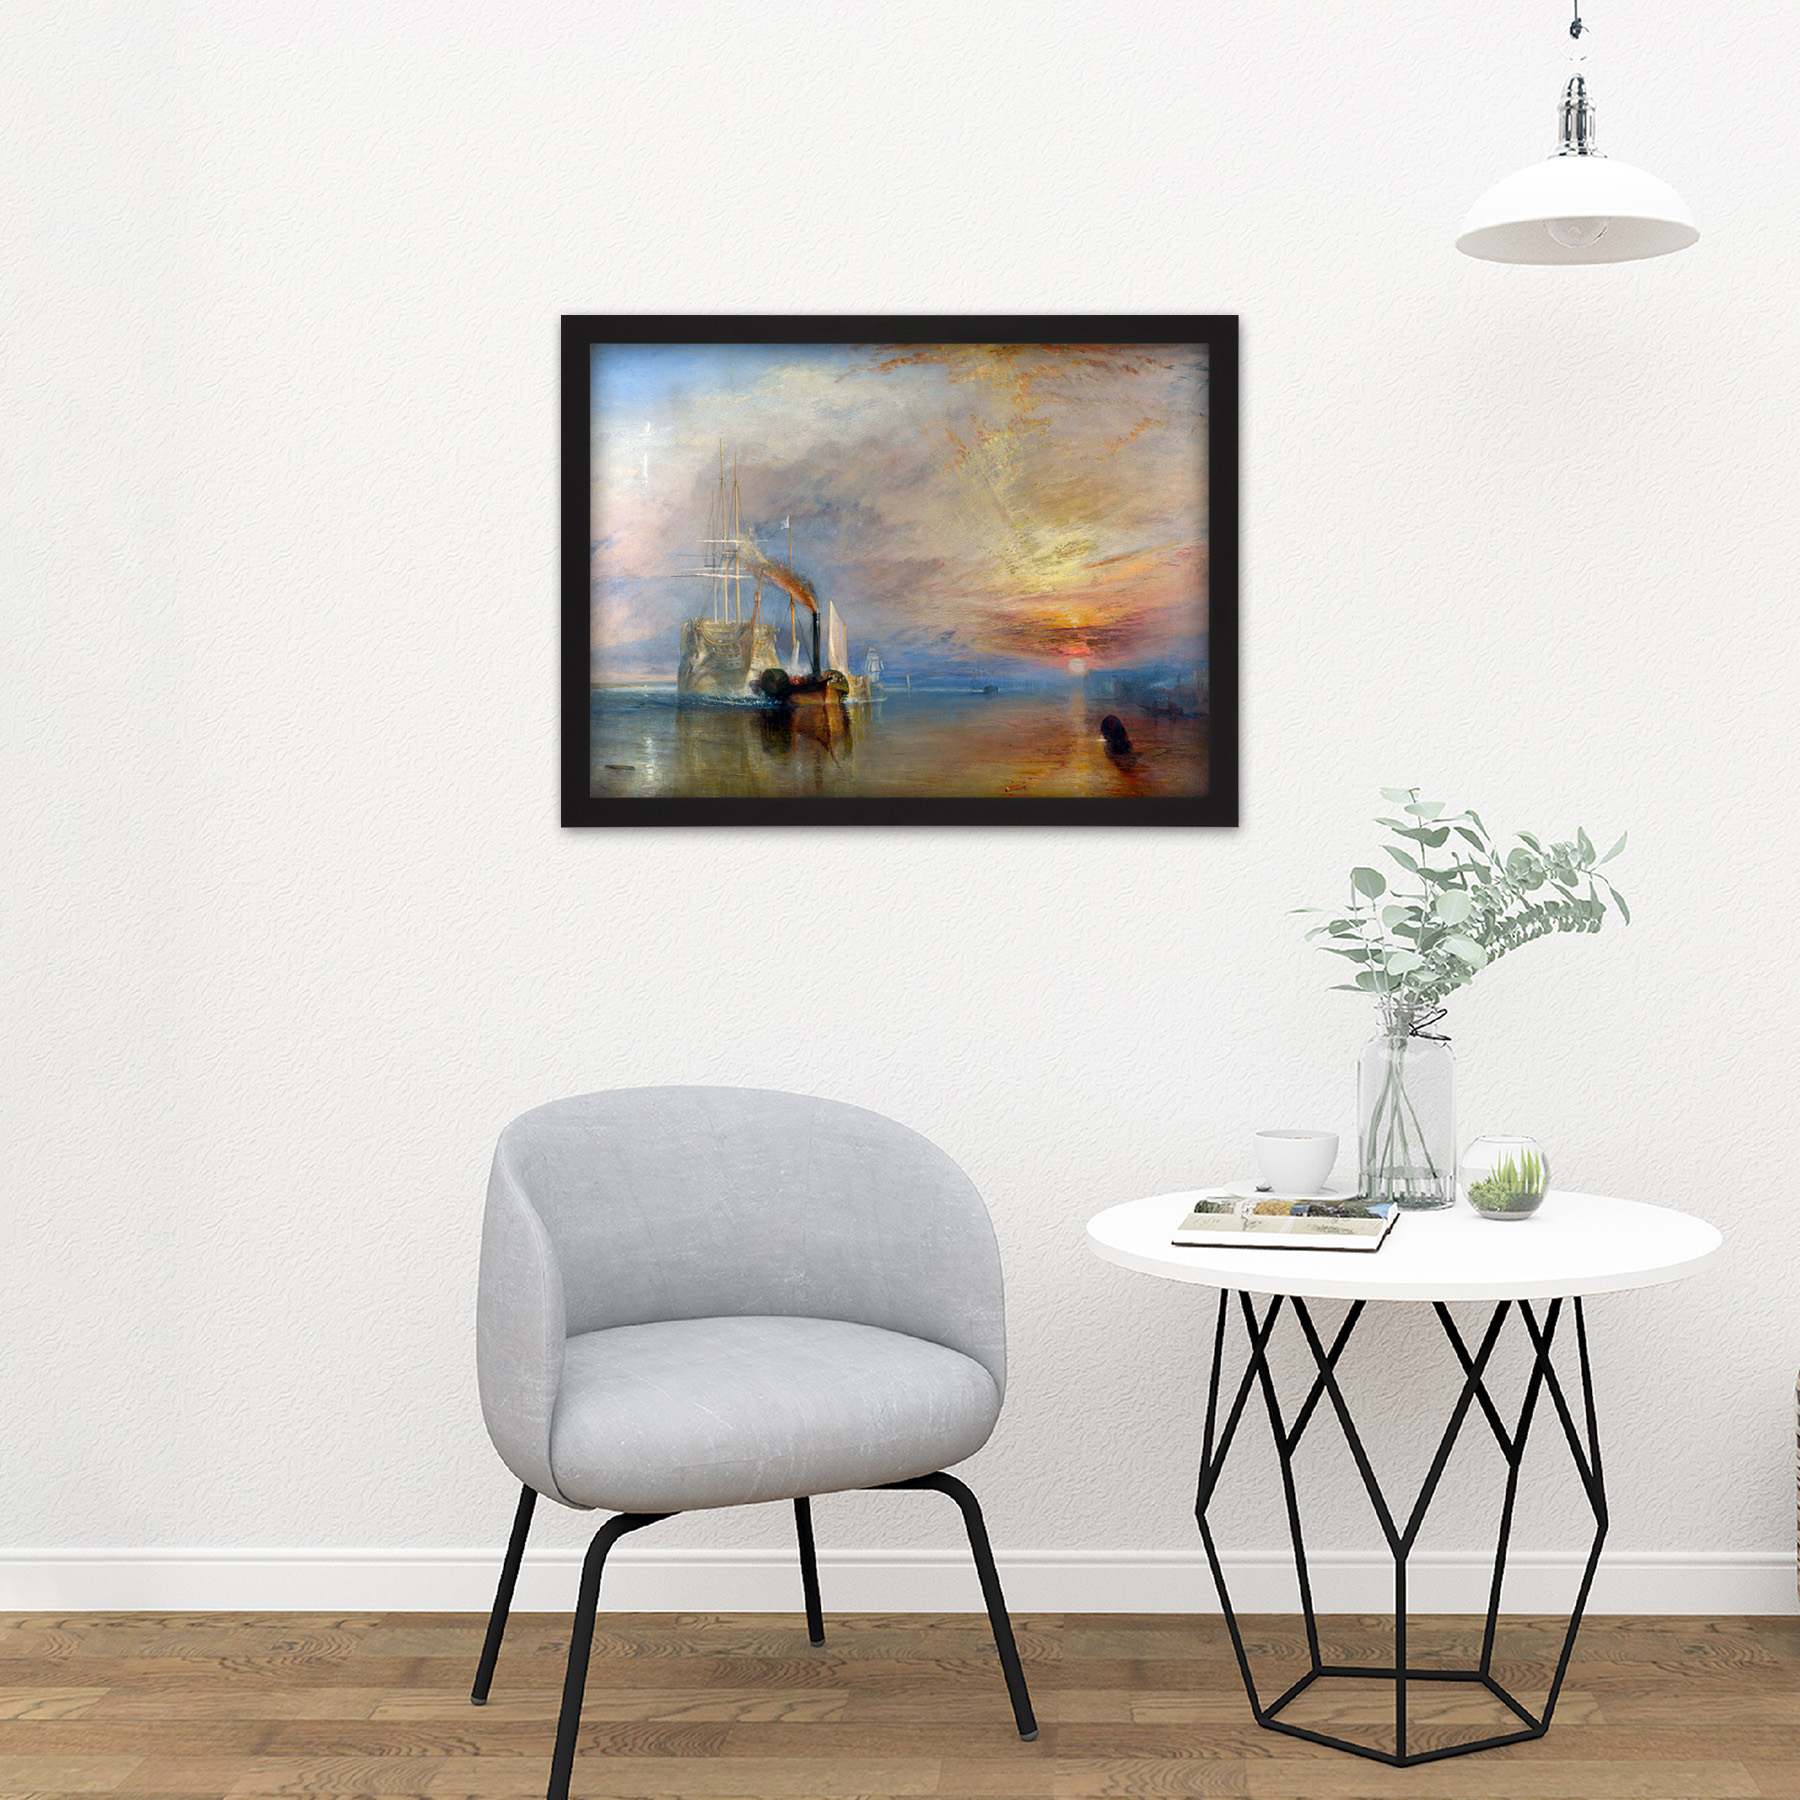 Turner-The-Fighting-Temeraire-Ship-Painting-Framed-Wall-Art-Print-18X24-In thumbnail 4